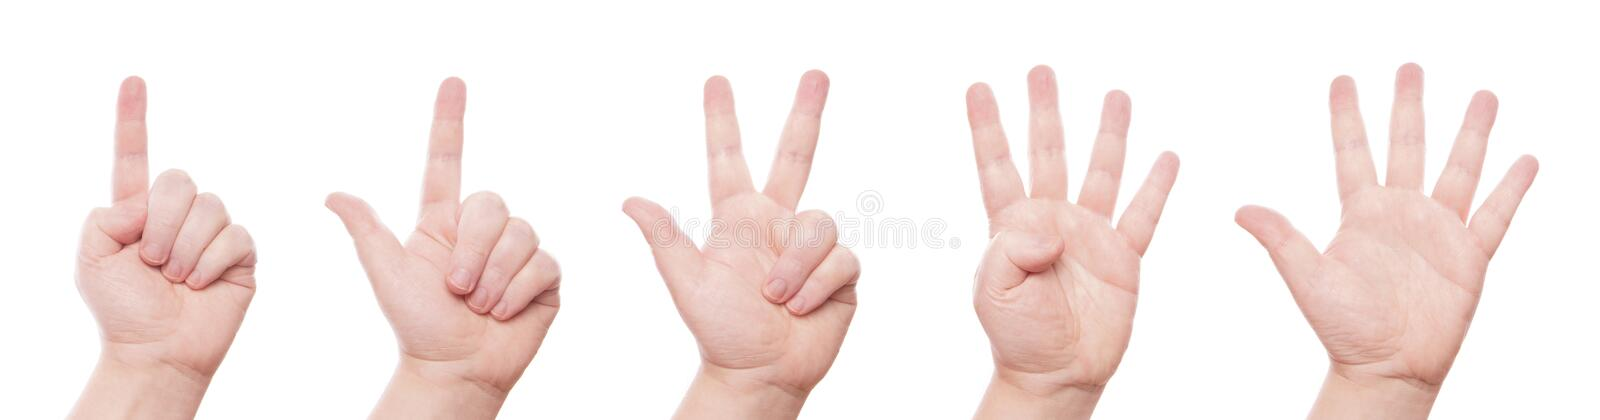 Counting Hand Signs From One To Five Stock Image - Image of